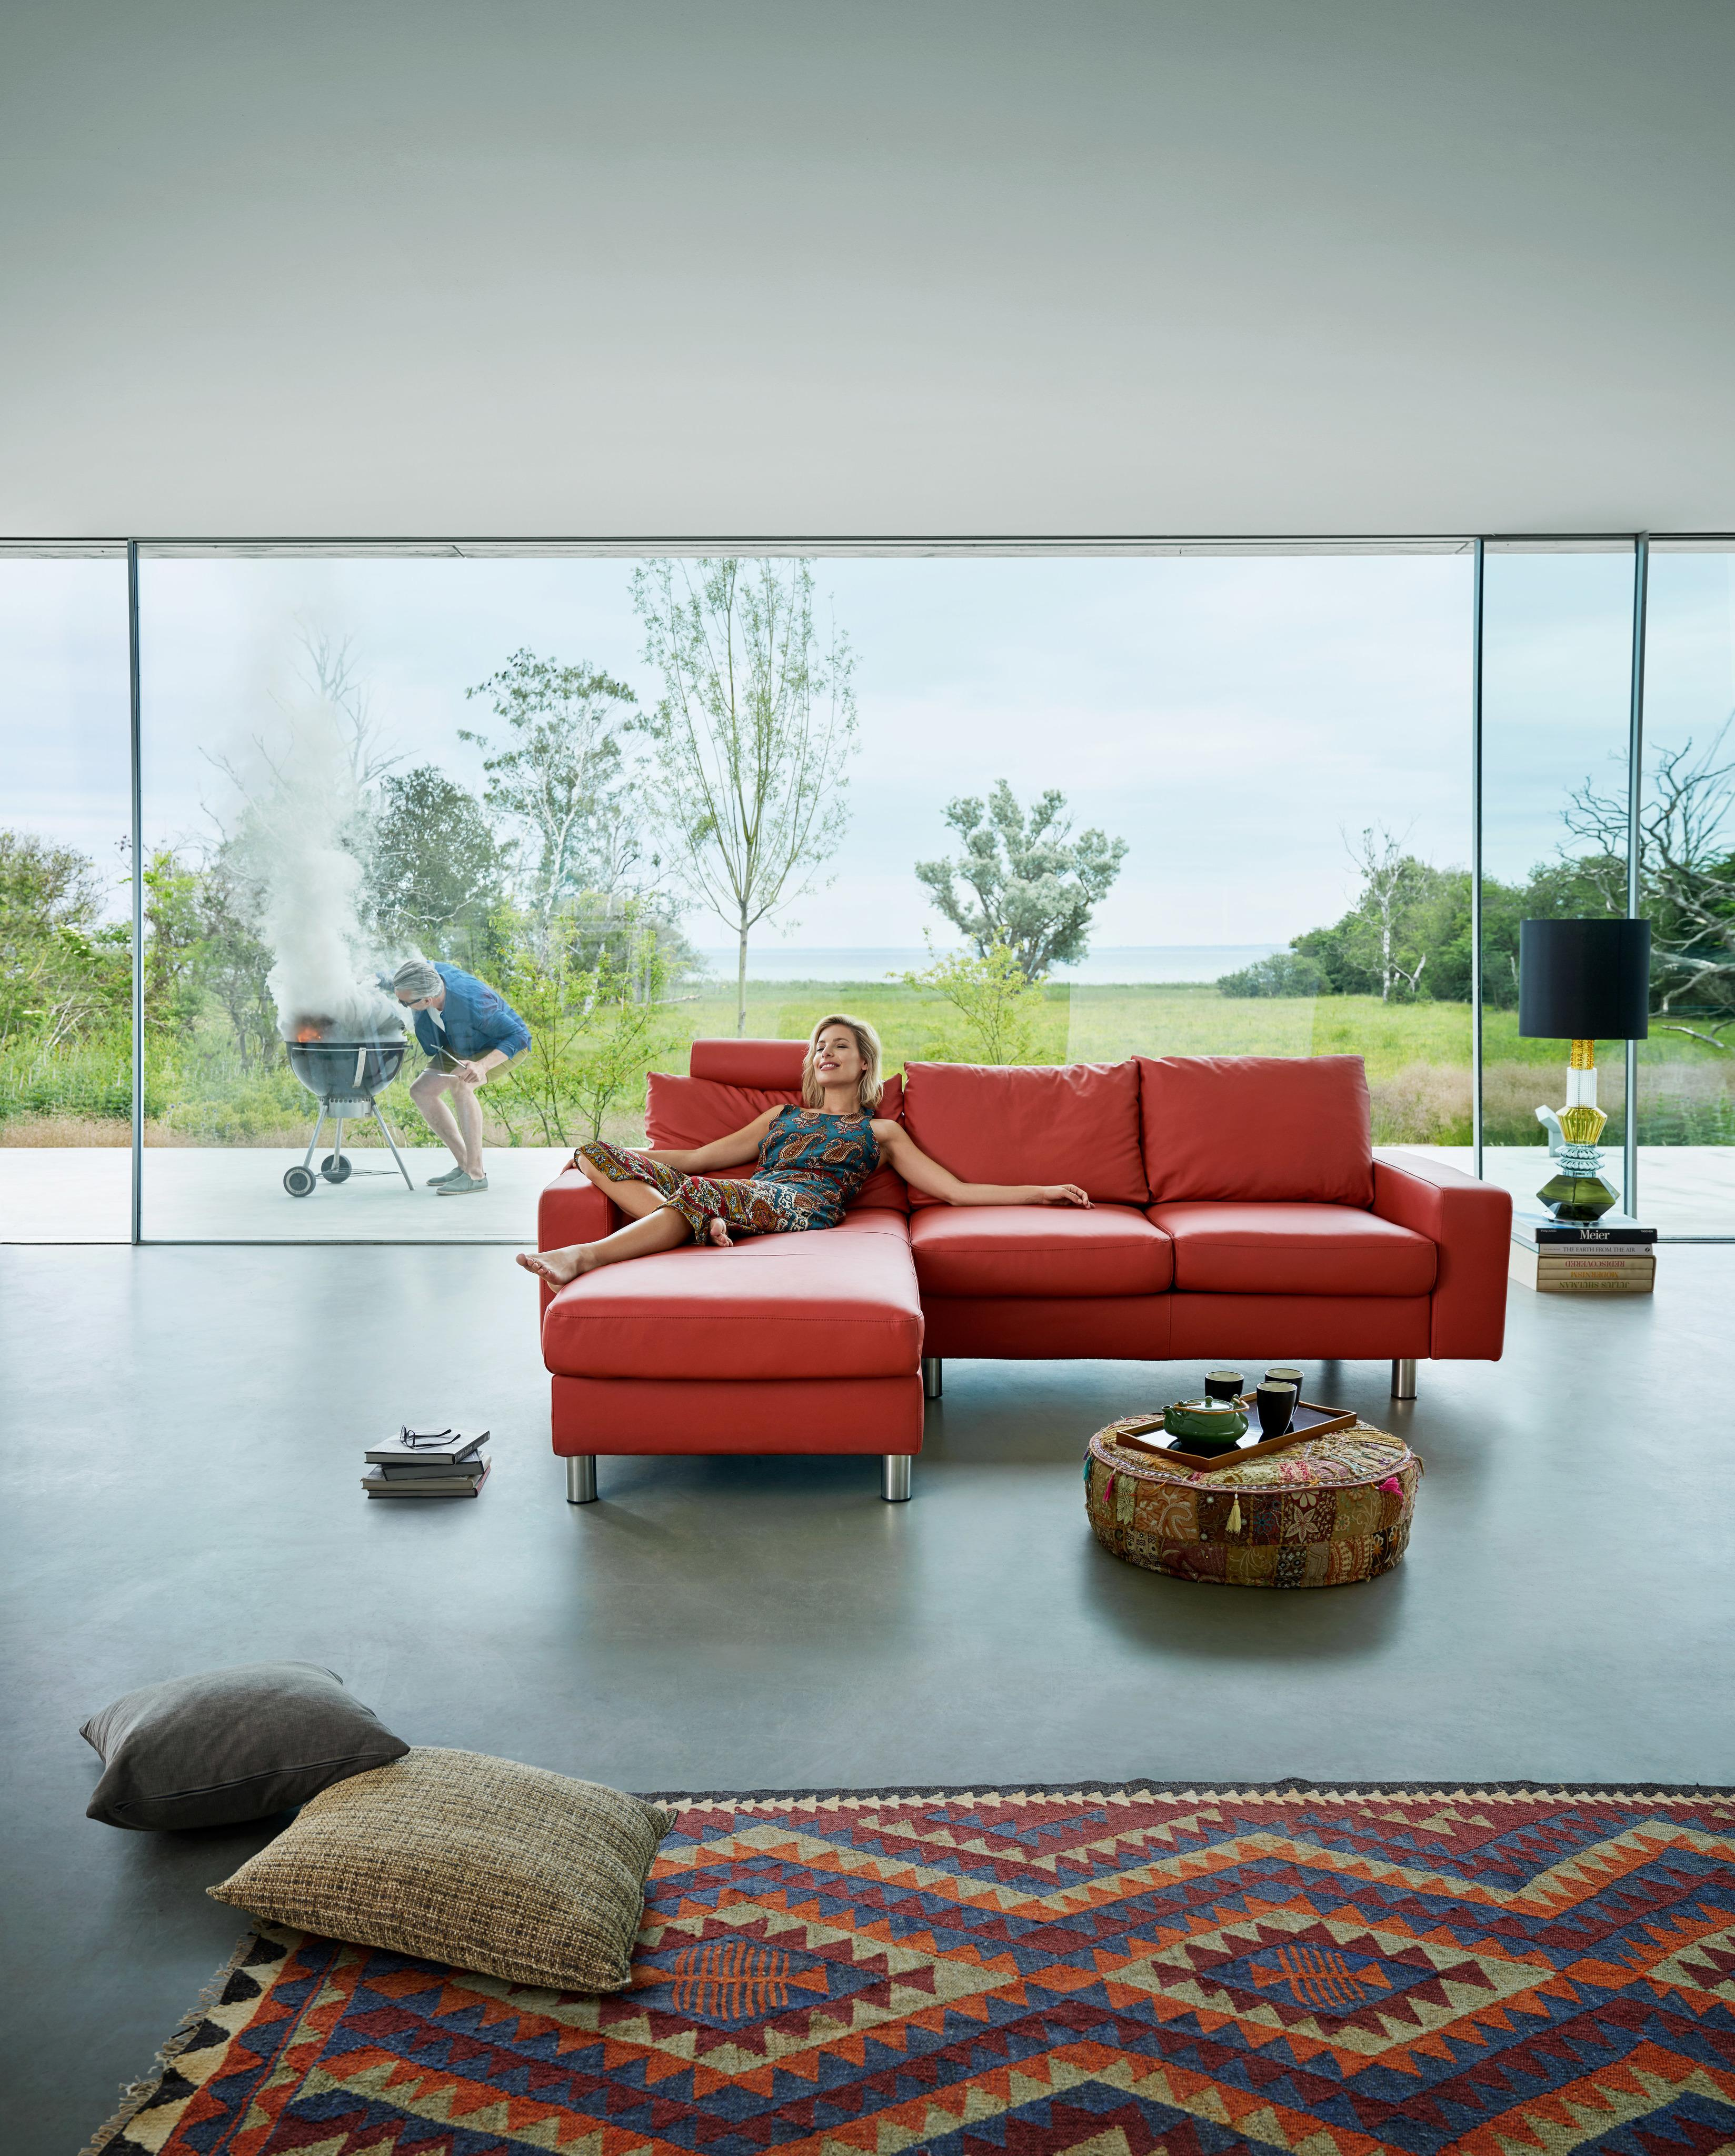 Stressless E200 Sofa mit Chaiselongue #ecksofa #sofa #chaiselongue ©Ekornes